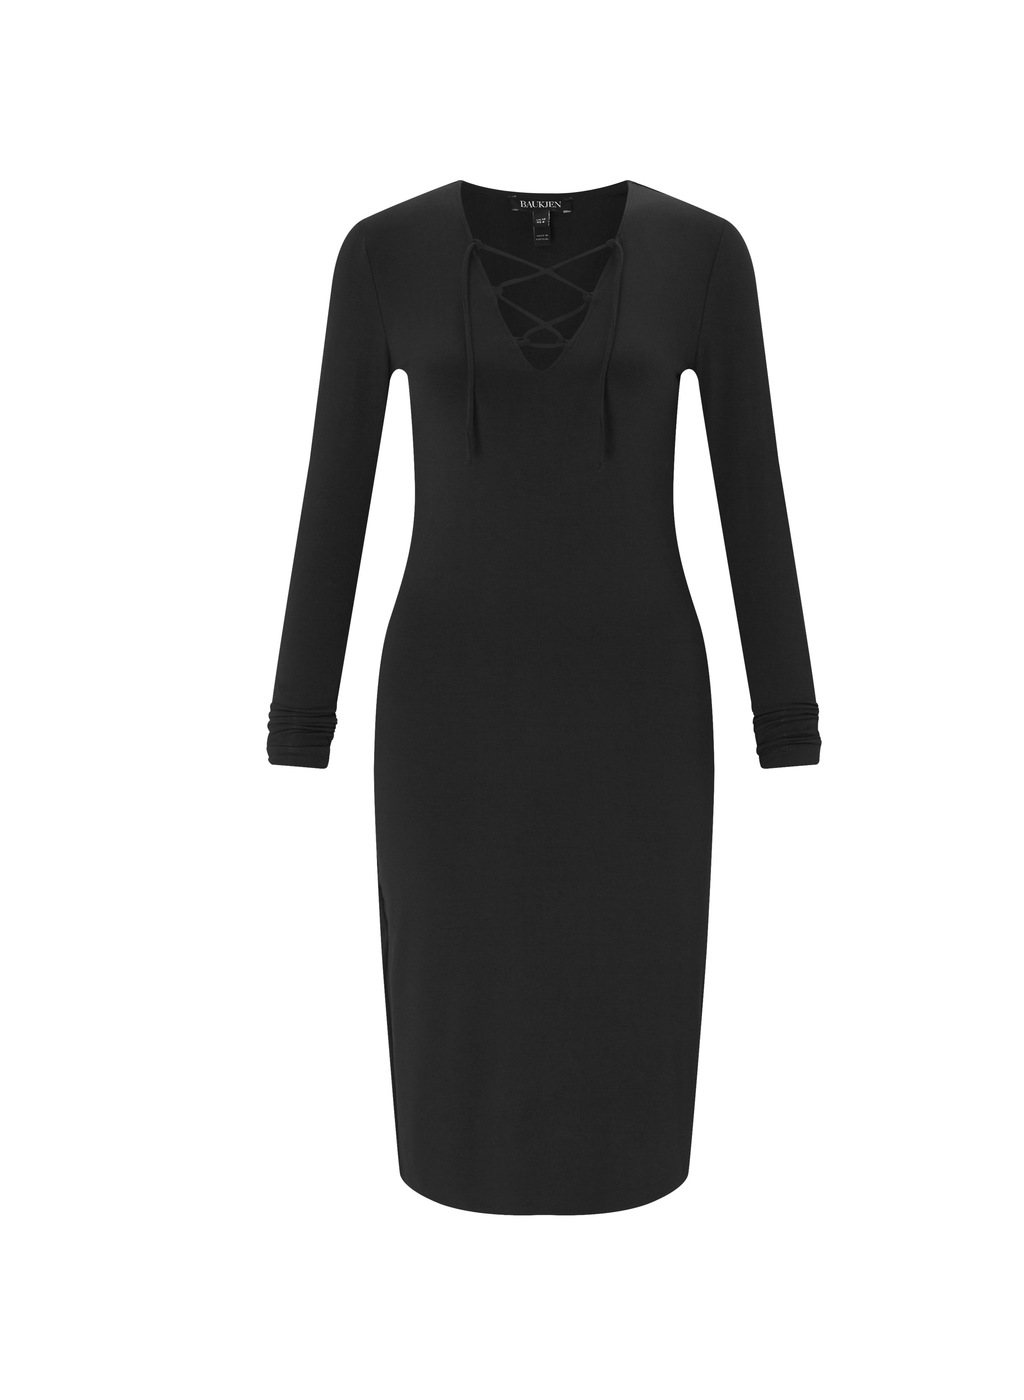 Womenswear Hinton Dress - neckline: v-neck; fit: tight; pattern: plain; style: bodycon; hip detail: draws attention to hips; predominant colour: black; occasions: evening; length: on the knee; fibres: polyester/polyamide - stretch; sleeve length: long sleeve; sleeve style: standard; texture group: jersey - clingy; pattern type: fabric; season: a/w 2016; wardrobe: event; embellishment location: bust